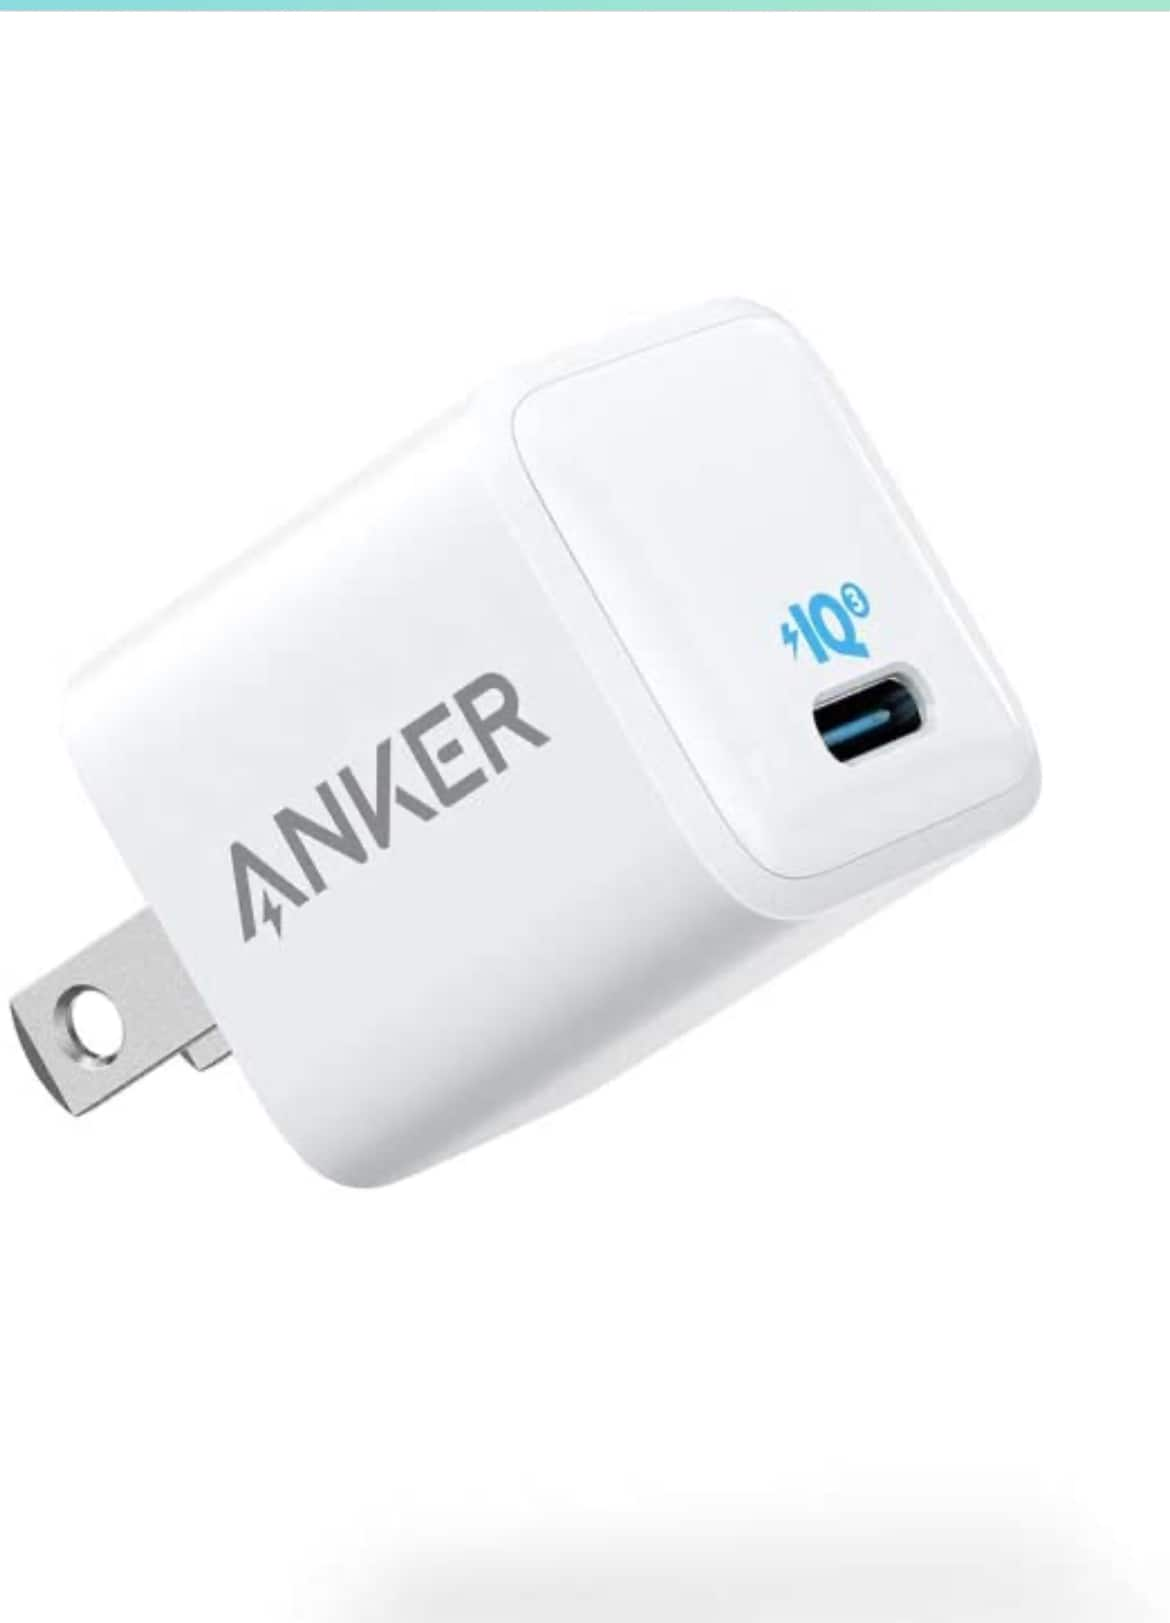 (2 Pack) Anker Nano Charger 20W PIQ 3.0 with 15% off $24.64 on amazon